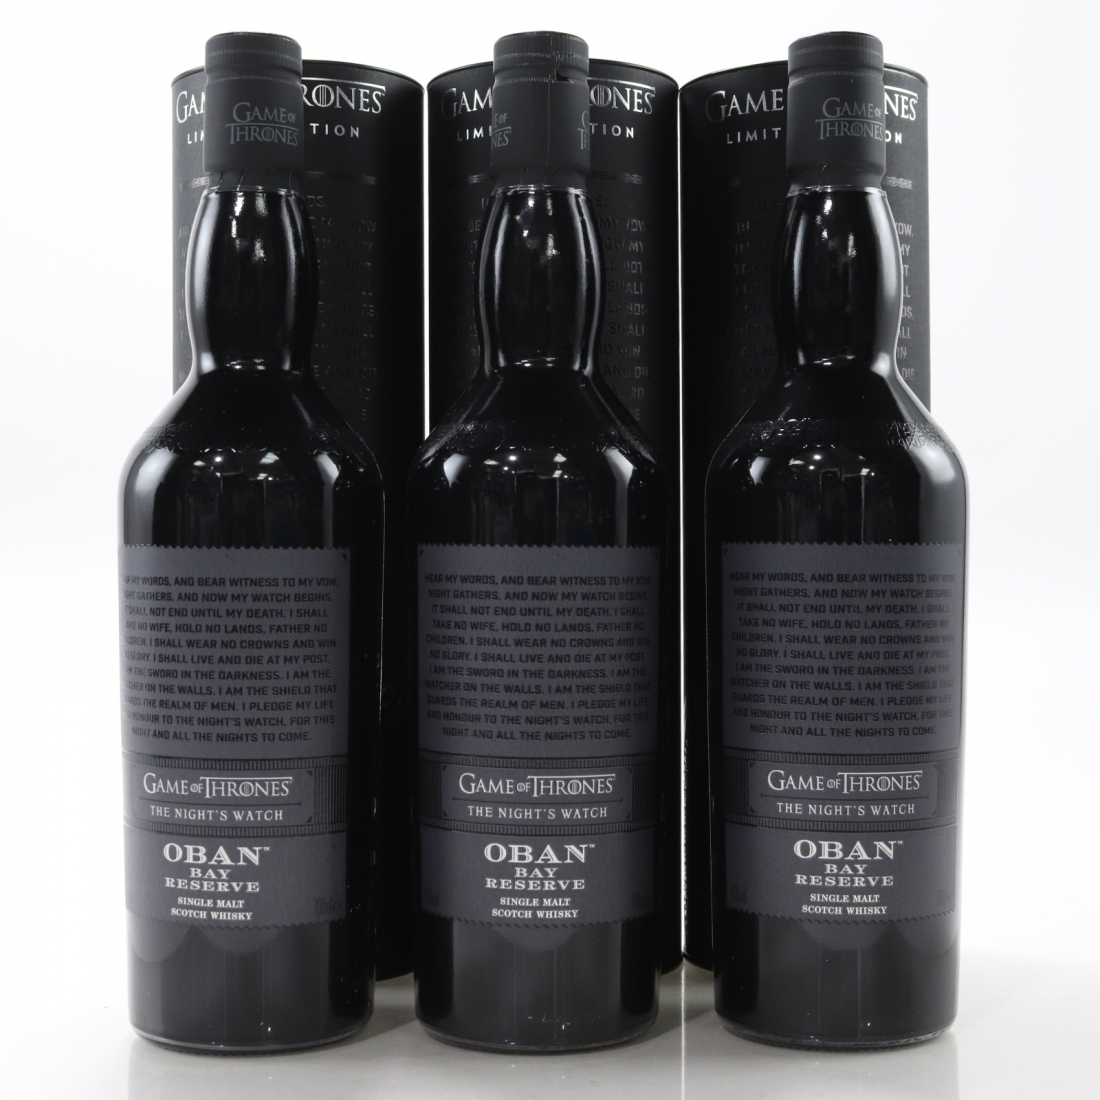 Oban Bay Reserve / The Night's Watch 3 x 70cl